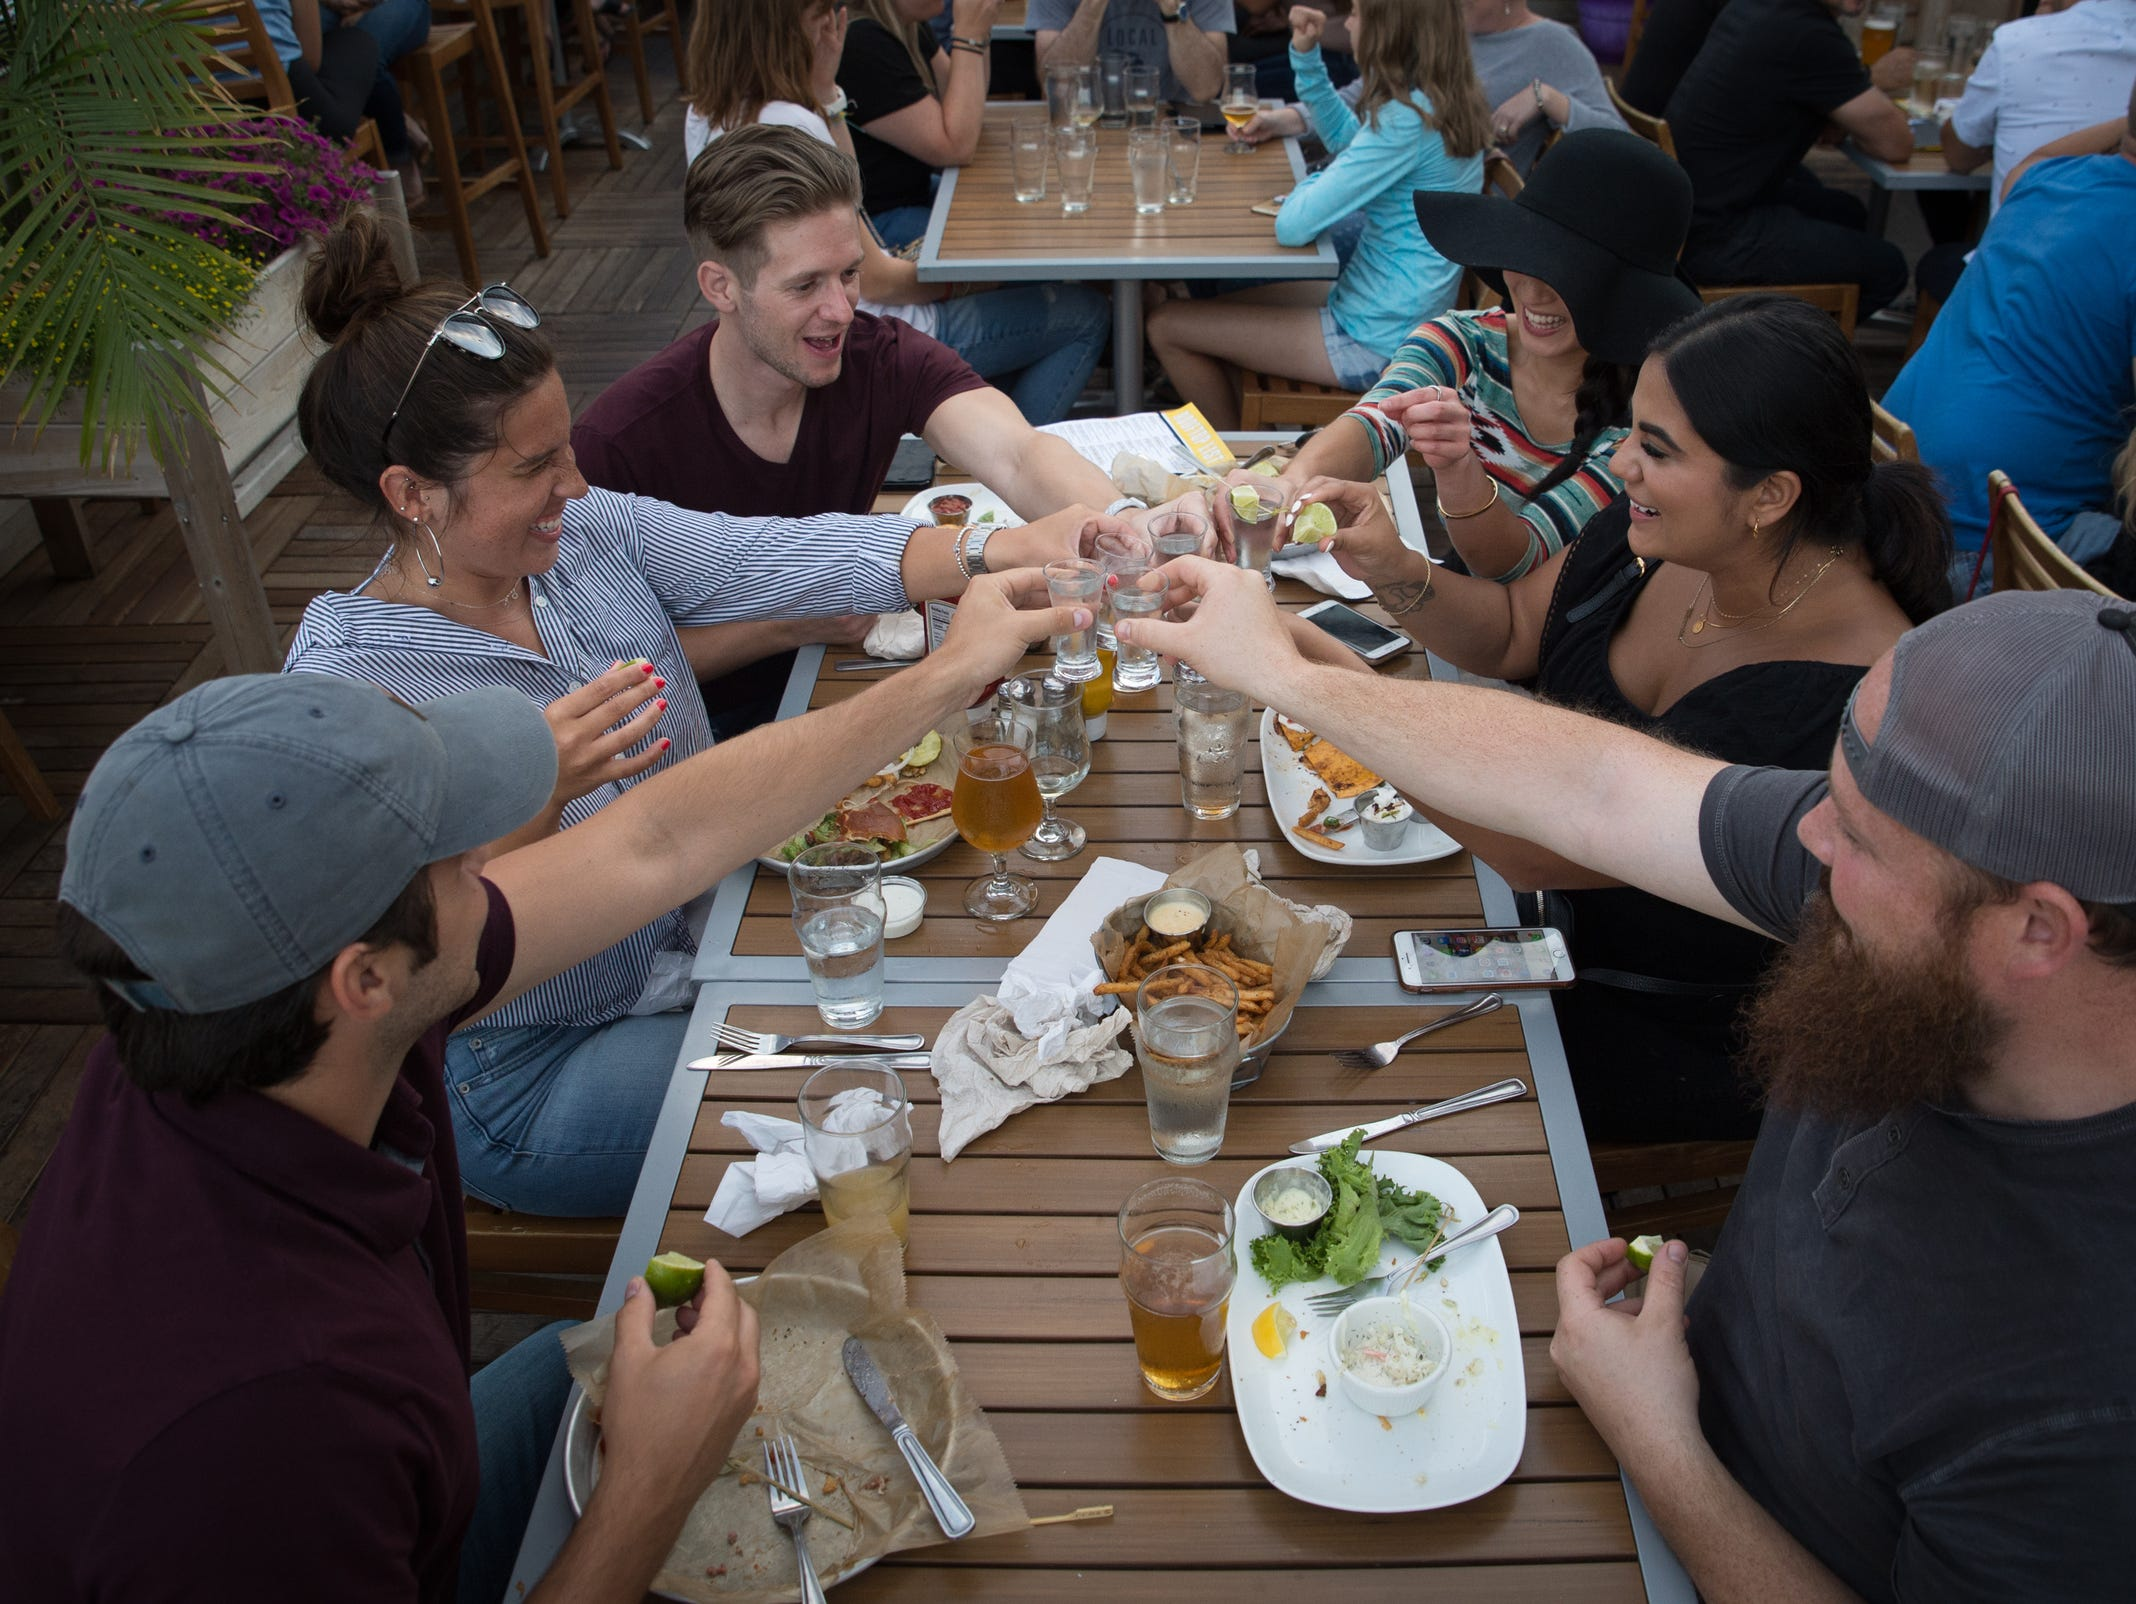 Jerome Rogers of Clinton Township, Cody Maccagnone of Clawson, Jonathan Bennett of Royal Oak, Olivia Ray of Royal Oak, Roya Yodhes and Nick Yodhes, both of Harrison Township, toast at HopCat in Royal Oak on Friday, July 20, 2018.